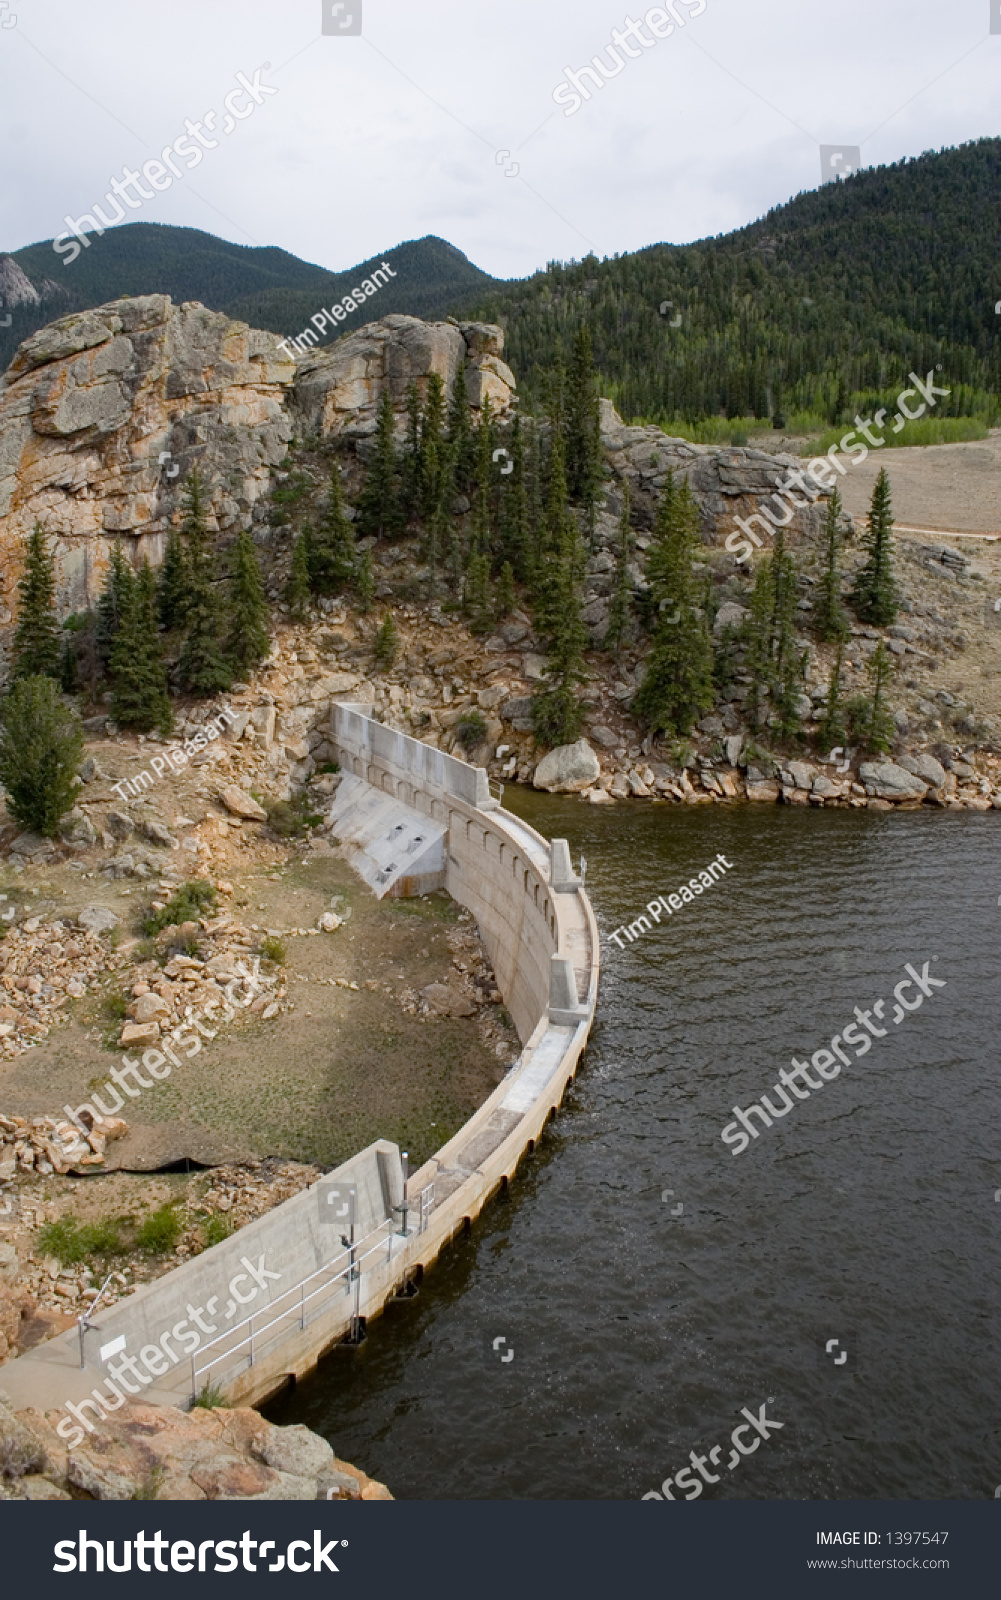 Vertical view concrete steel dam that stock photo 1397547 for Tarryall reservoir fishing